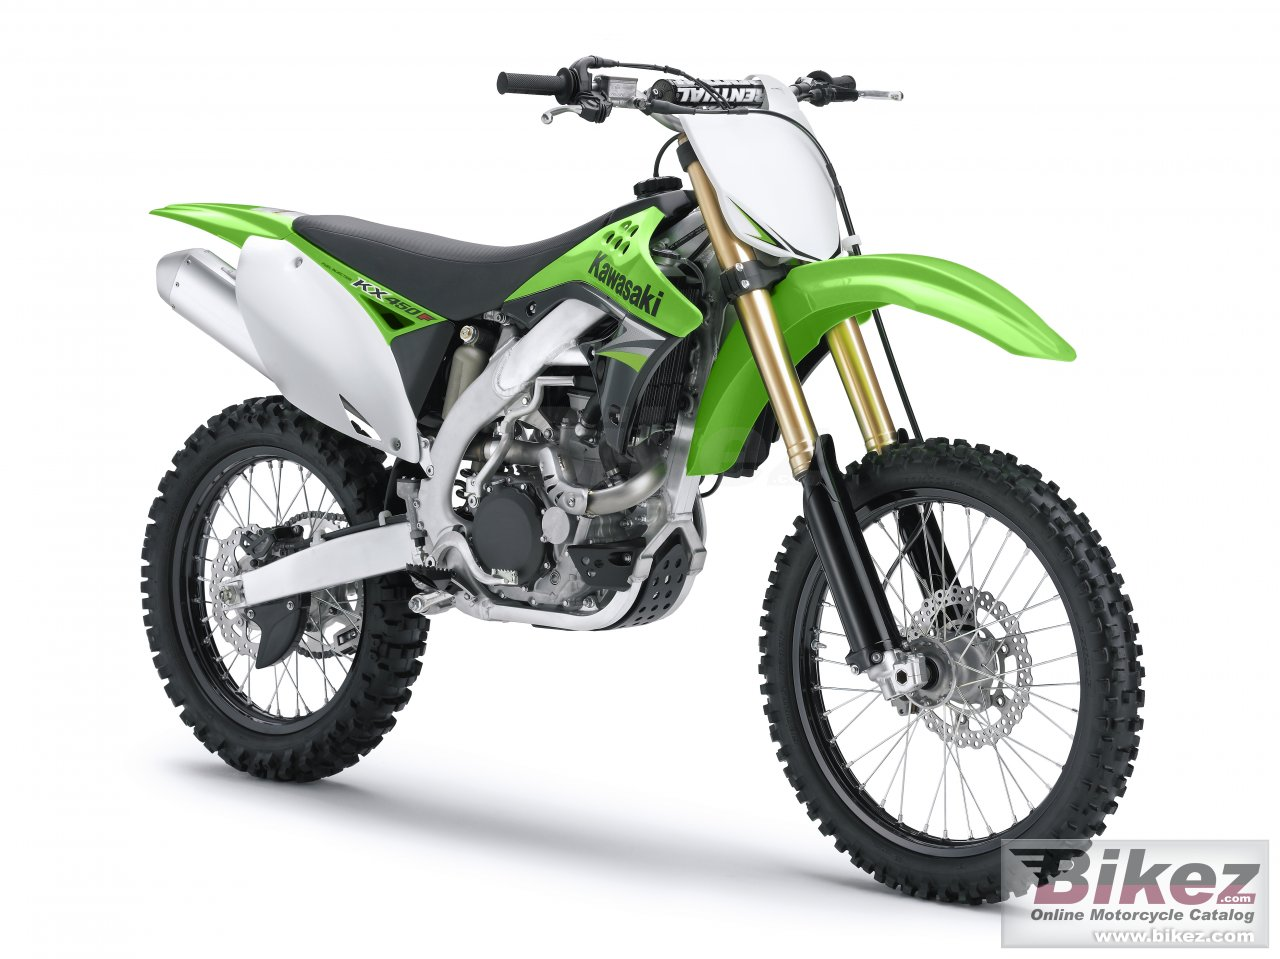 Big Kawasaki kx450f picture and wallpaper from Bikez.com